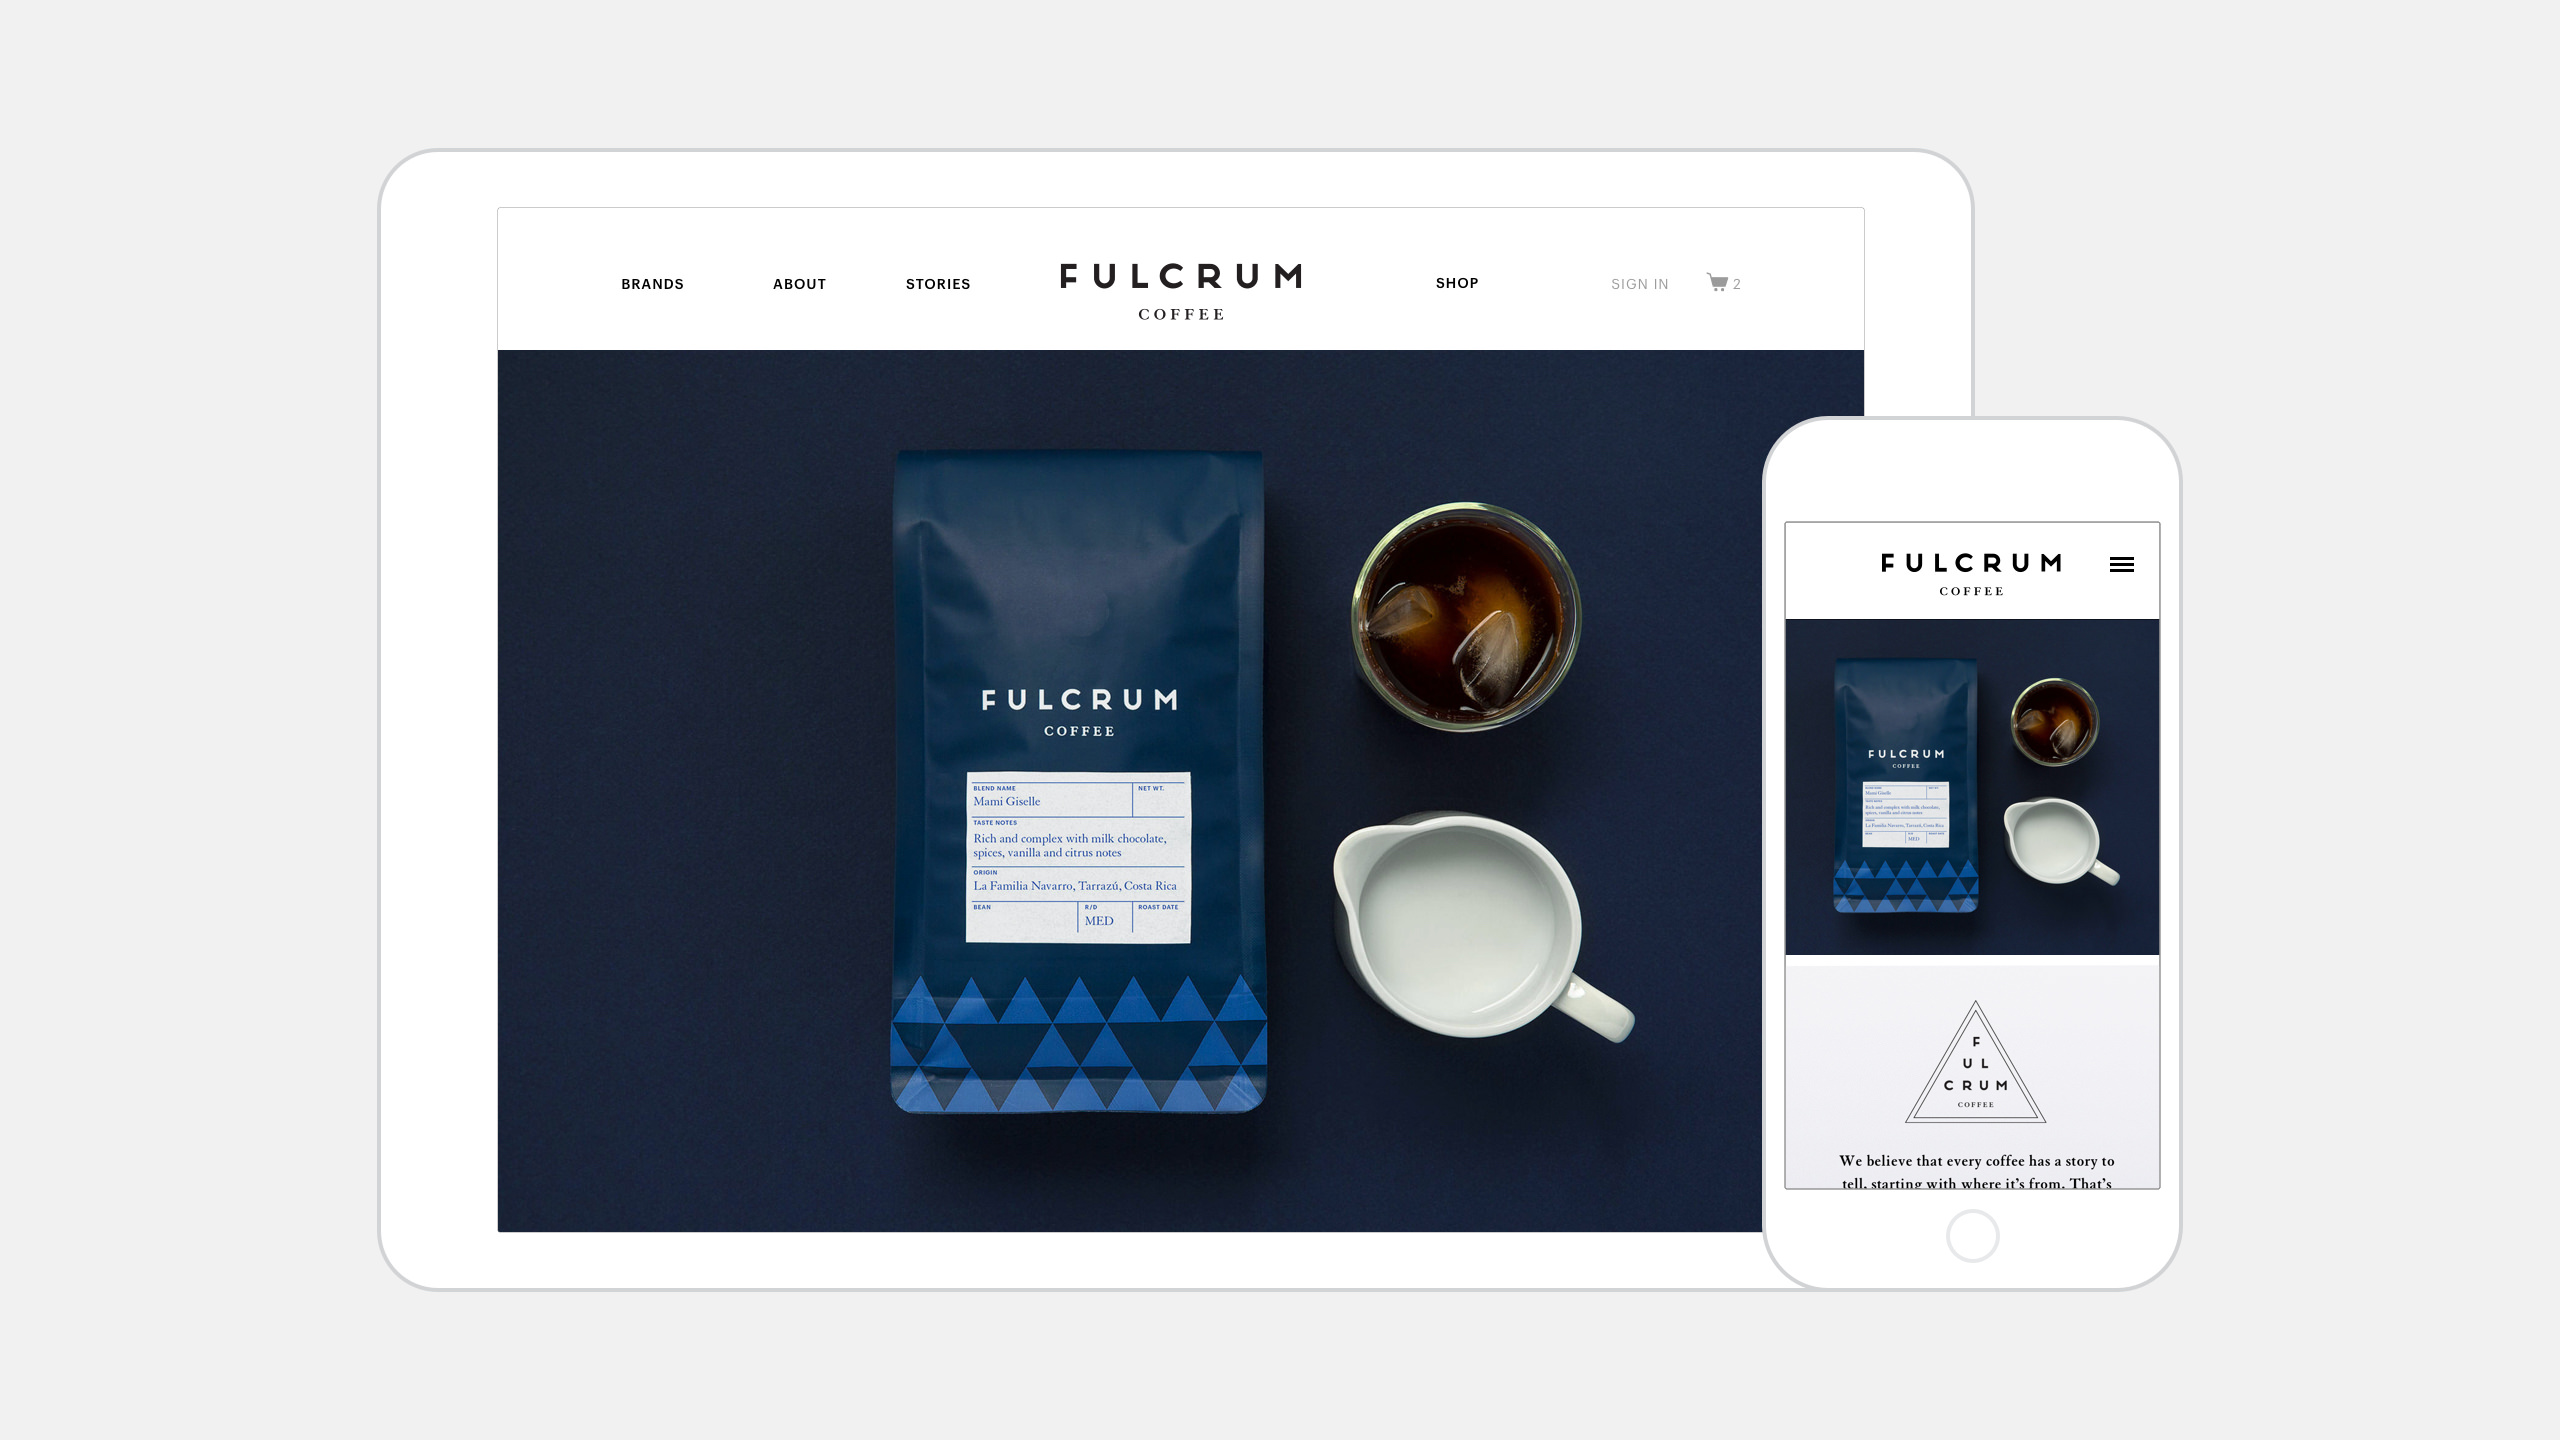 tolleson-case-study-fulcrum-coffee-interactive-04-v2